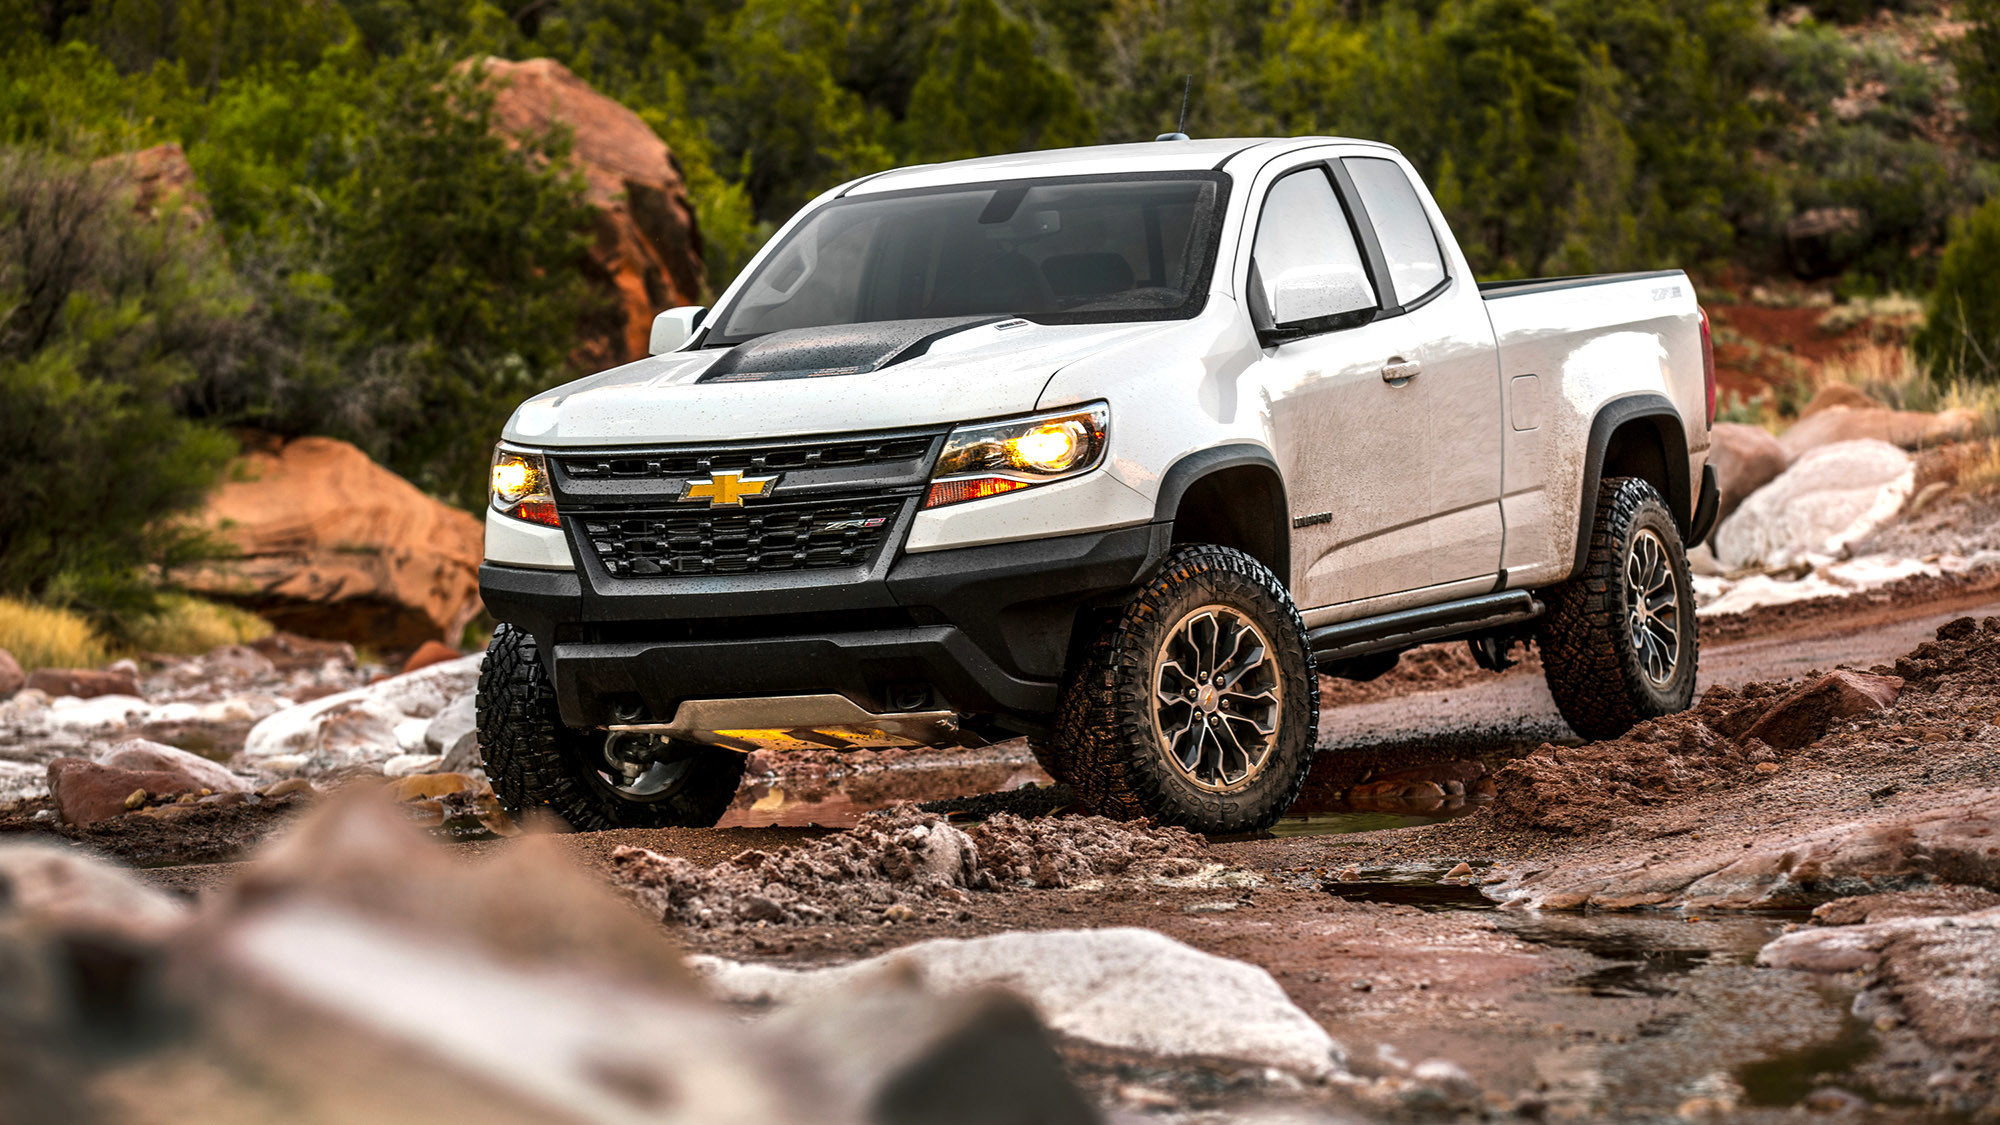 Chevy's Colorado ZR2 is a big boy truck toy - LA Times